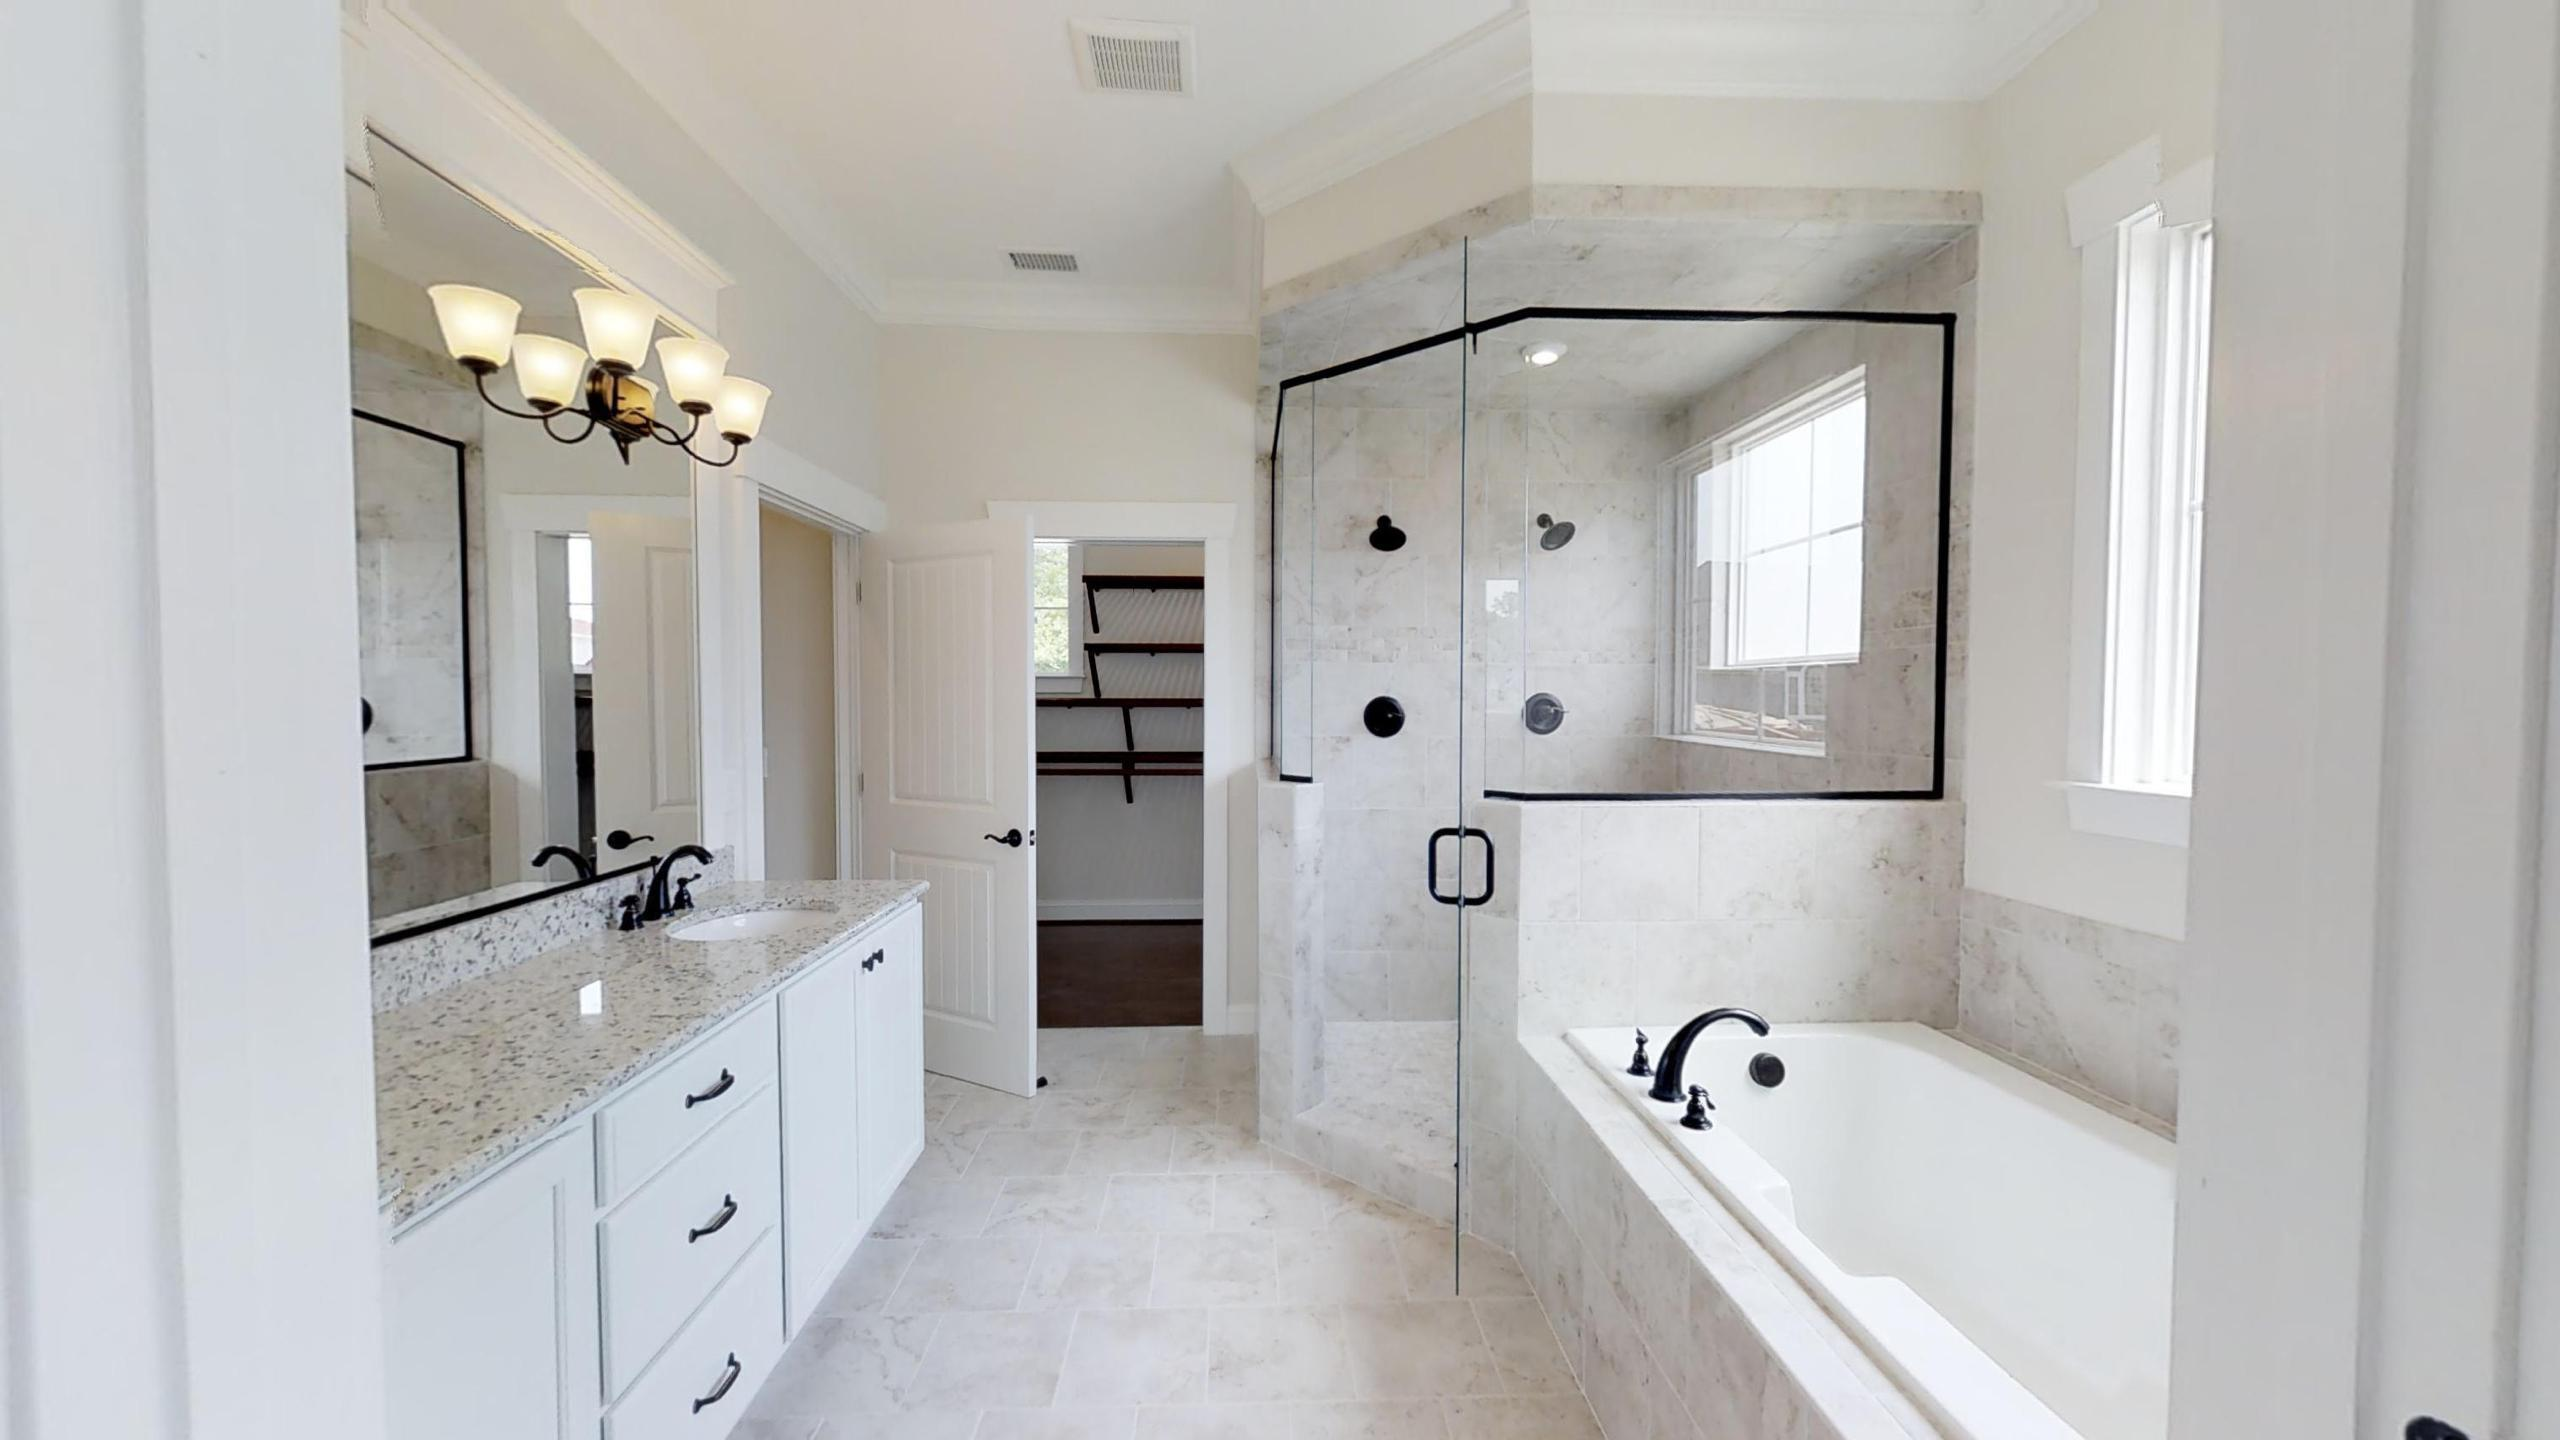 Bathroom featured in The Bayou Cottage By Stephen Alexander Homes in Outer Banks, NC